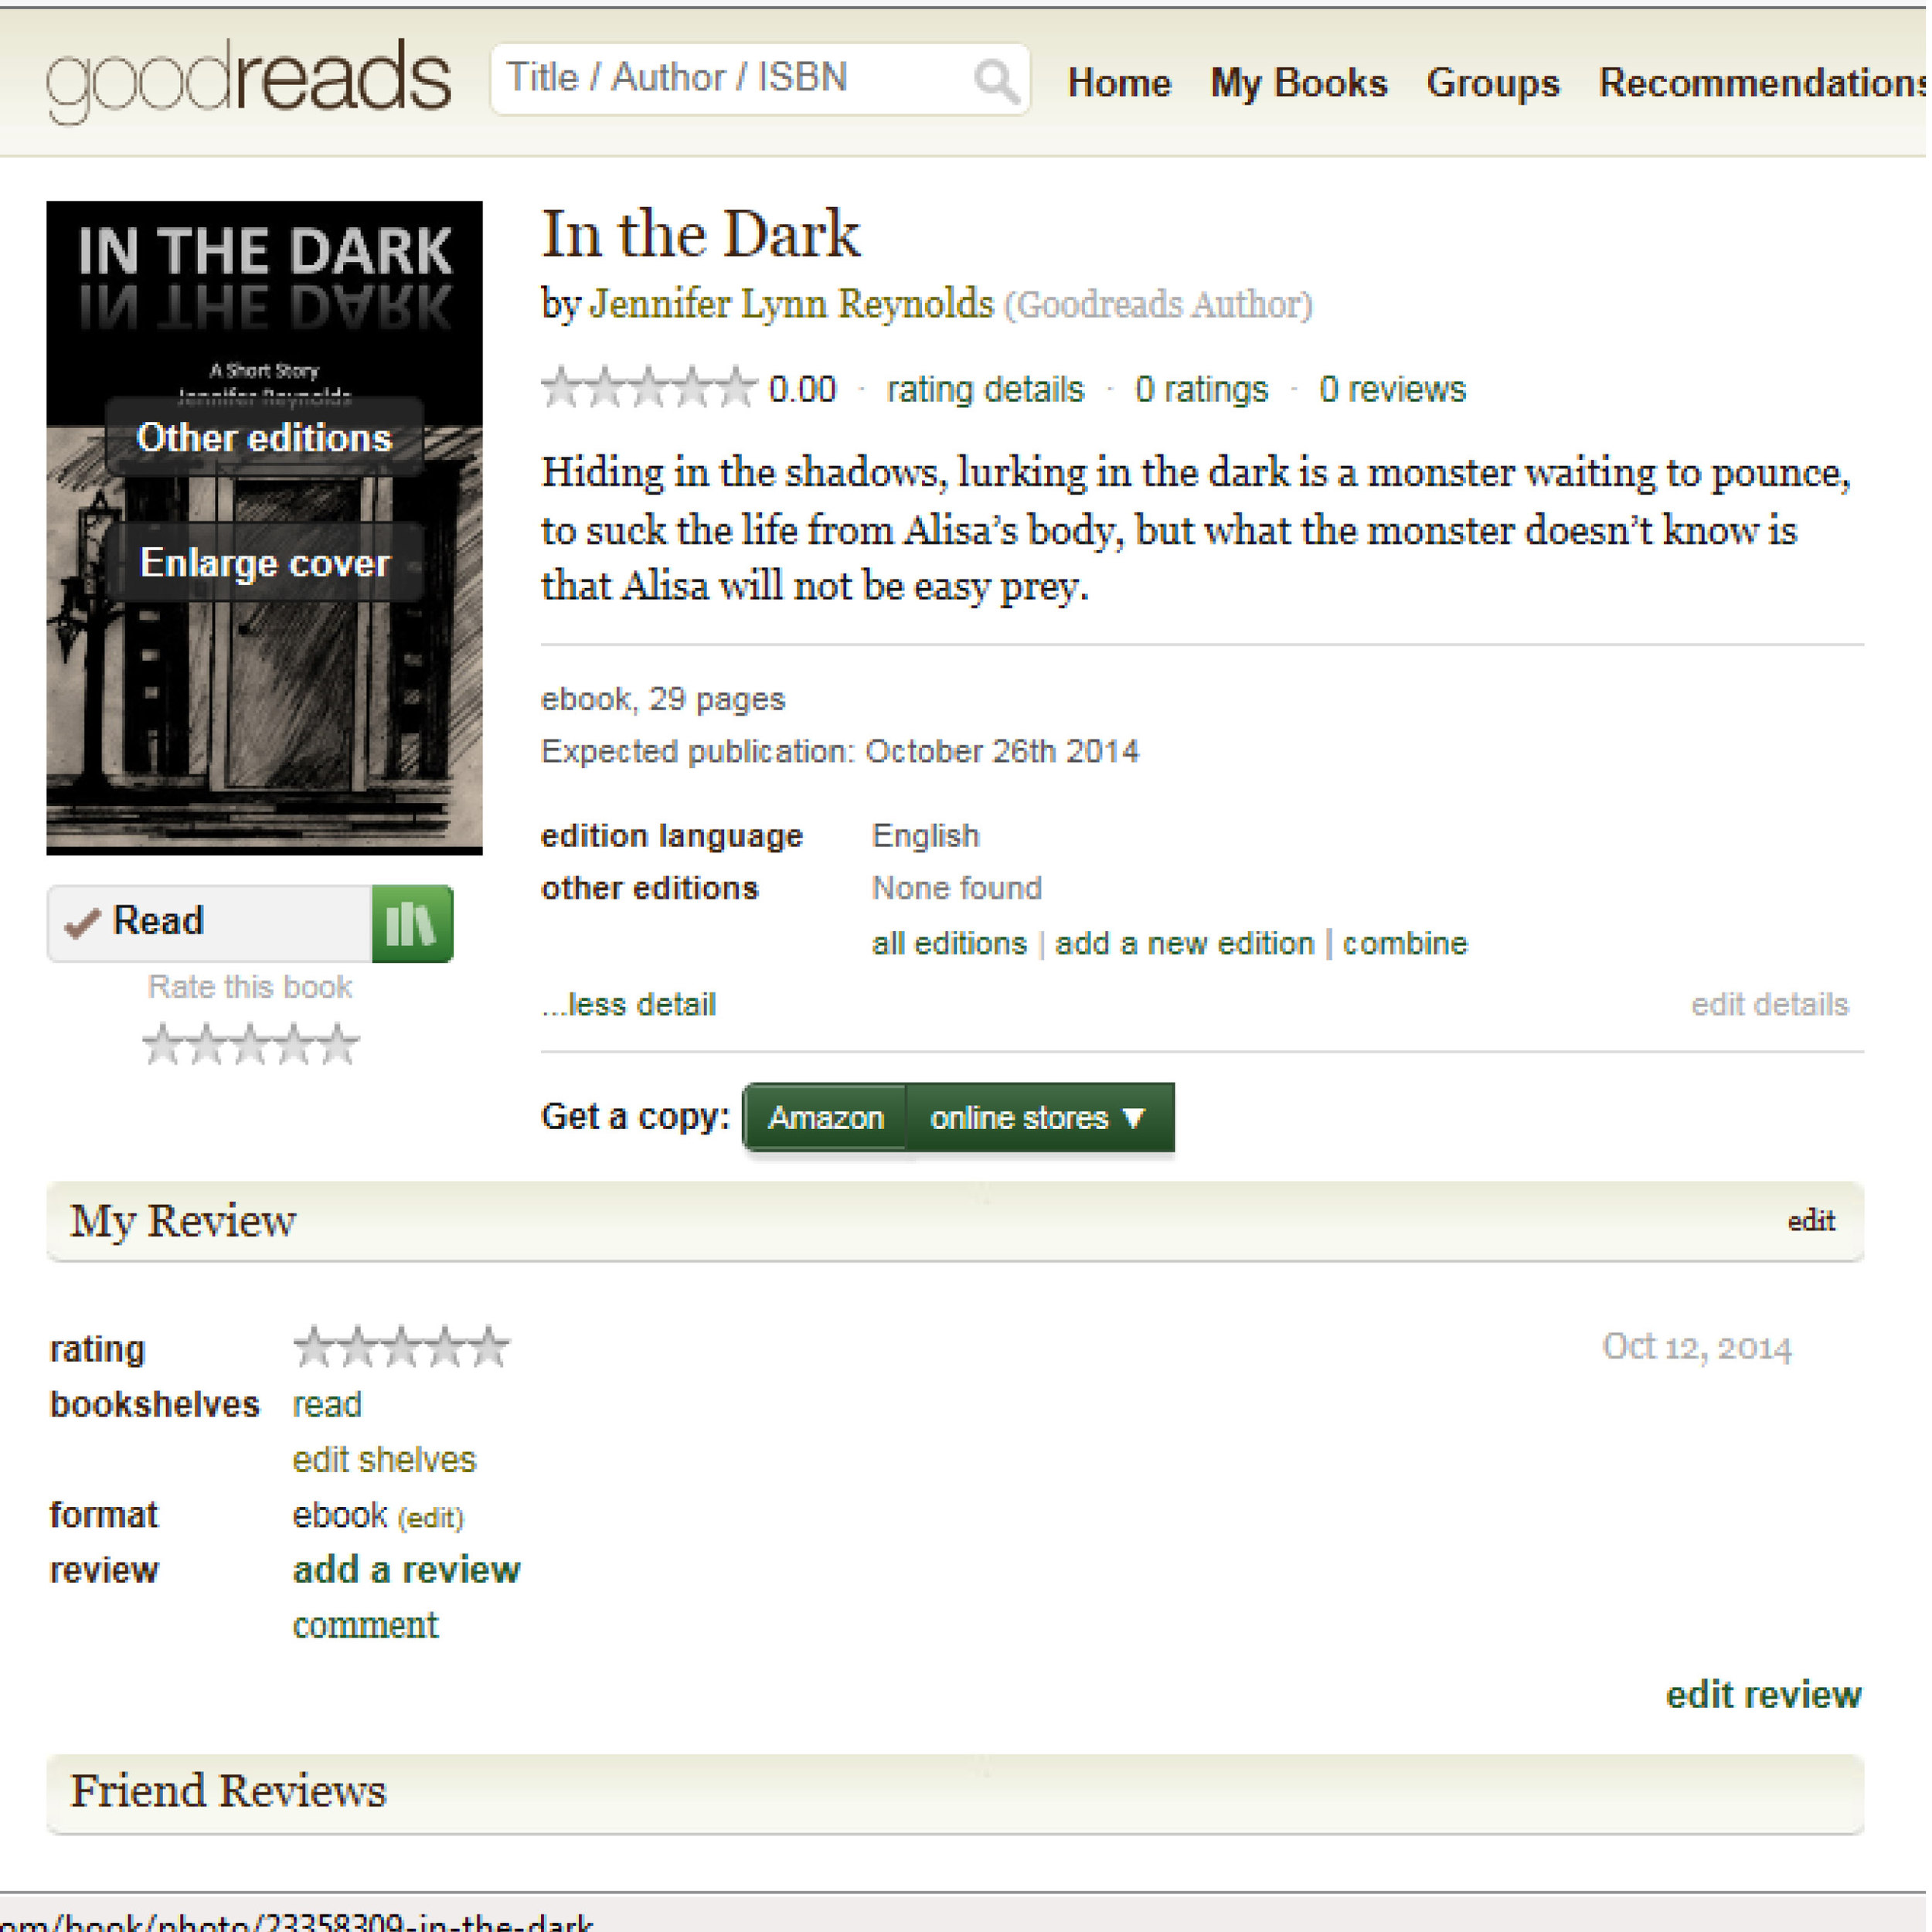 """In The Dark goes live tomorrow and is FREE. You can add this short story to your Goodreads """"to-read"""" list now at:  https://www.goodreads.com/book/show/23358309-in-the-dark"""